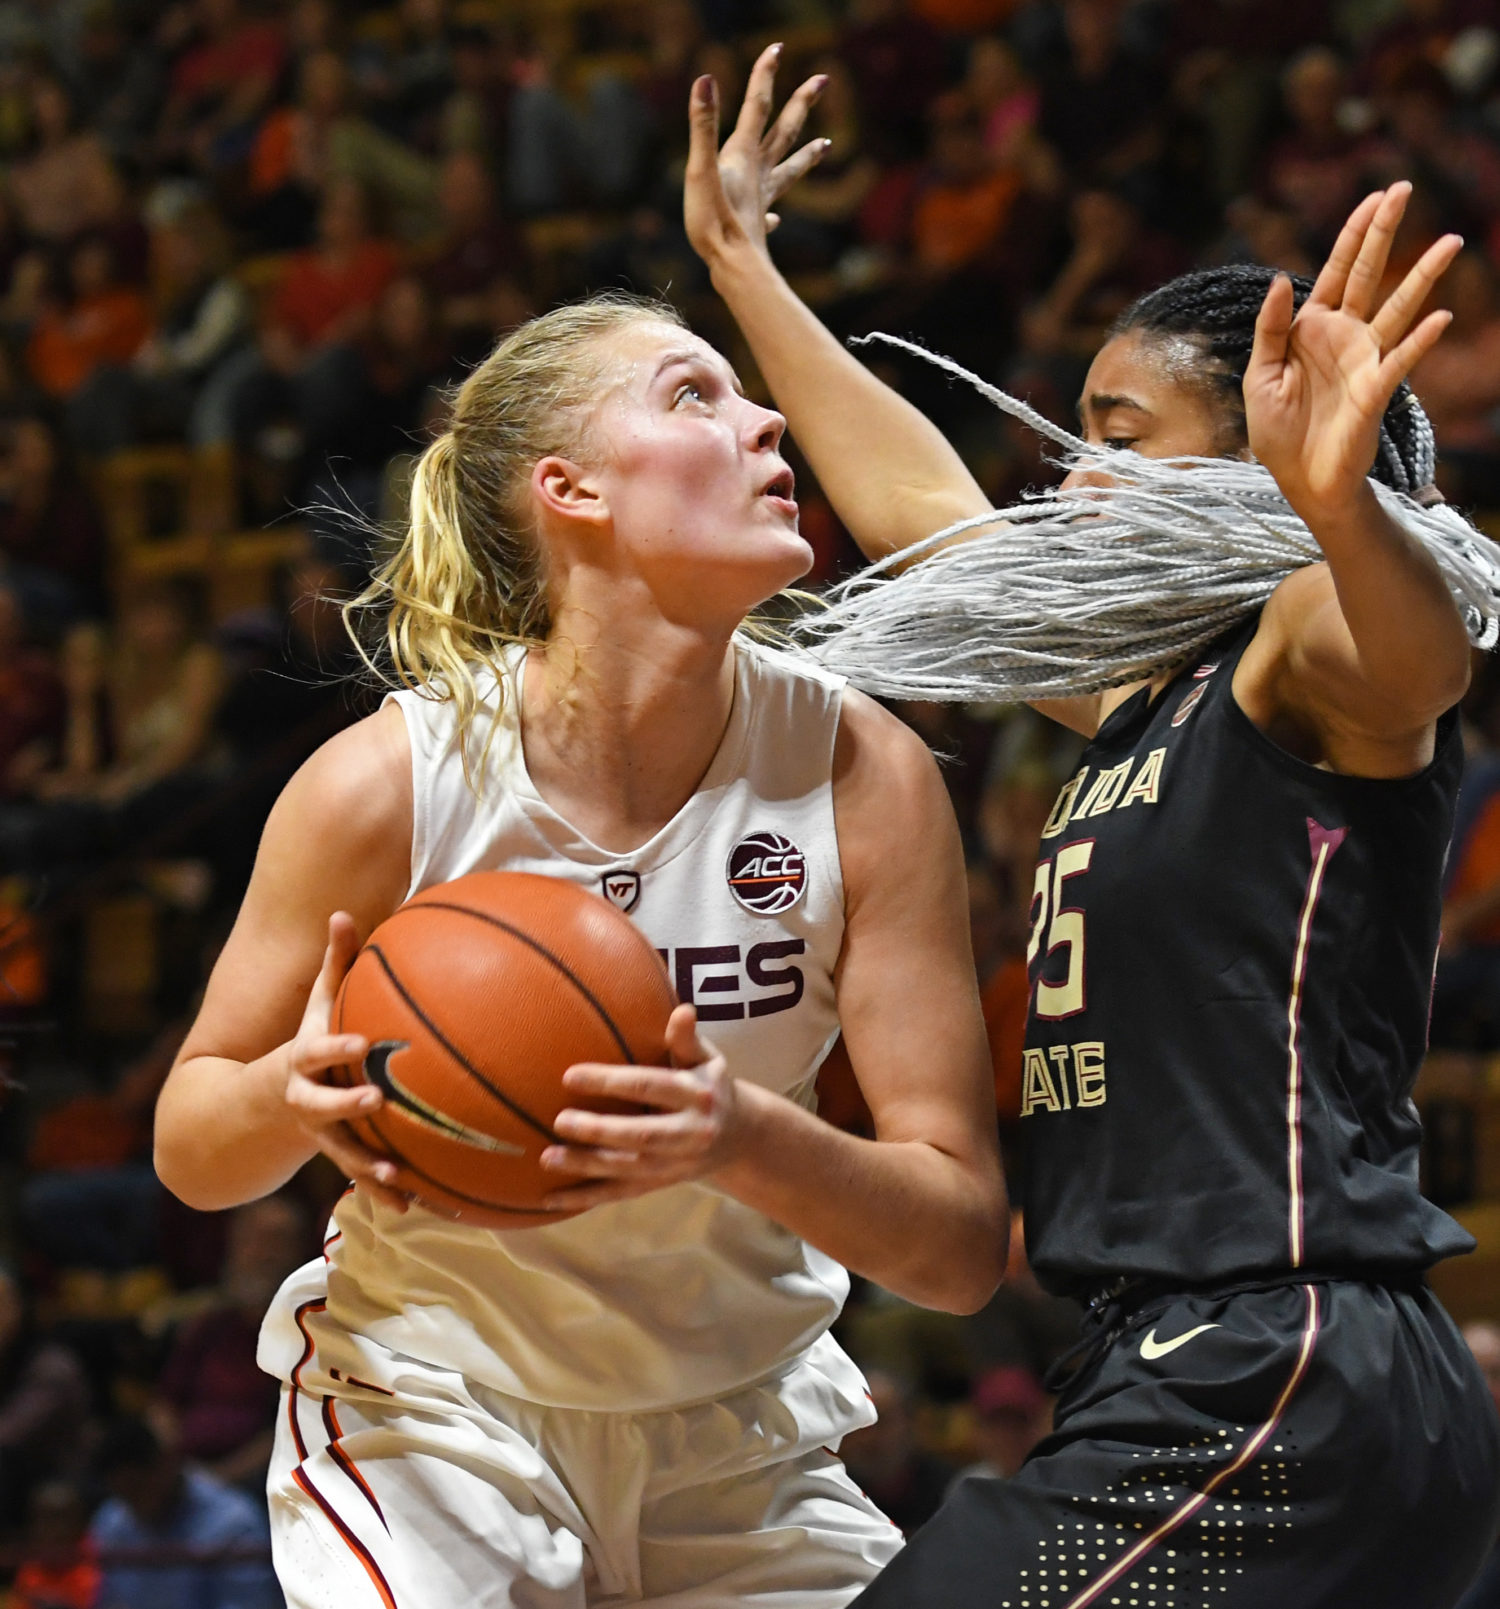 Virginia Tech Women's Basketball vs. Florida State